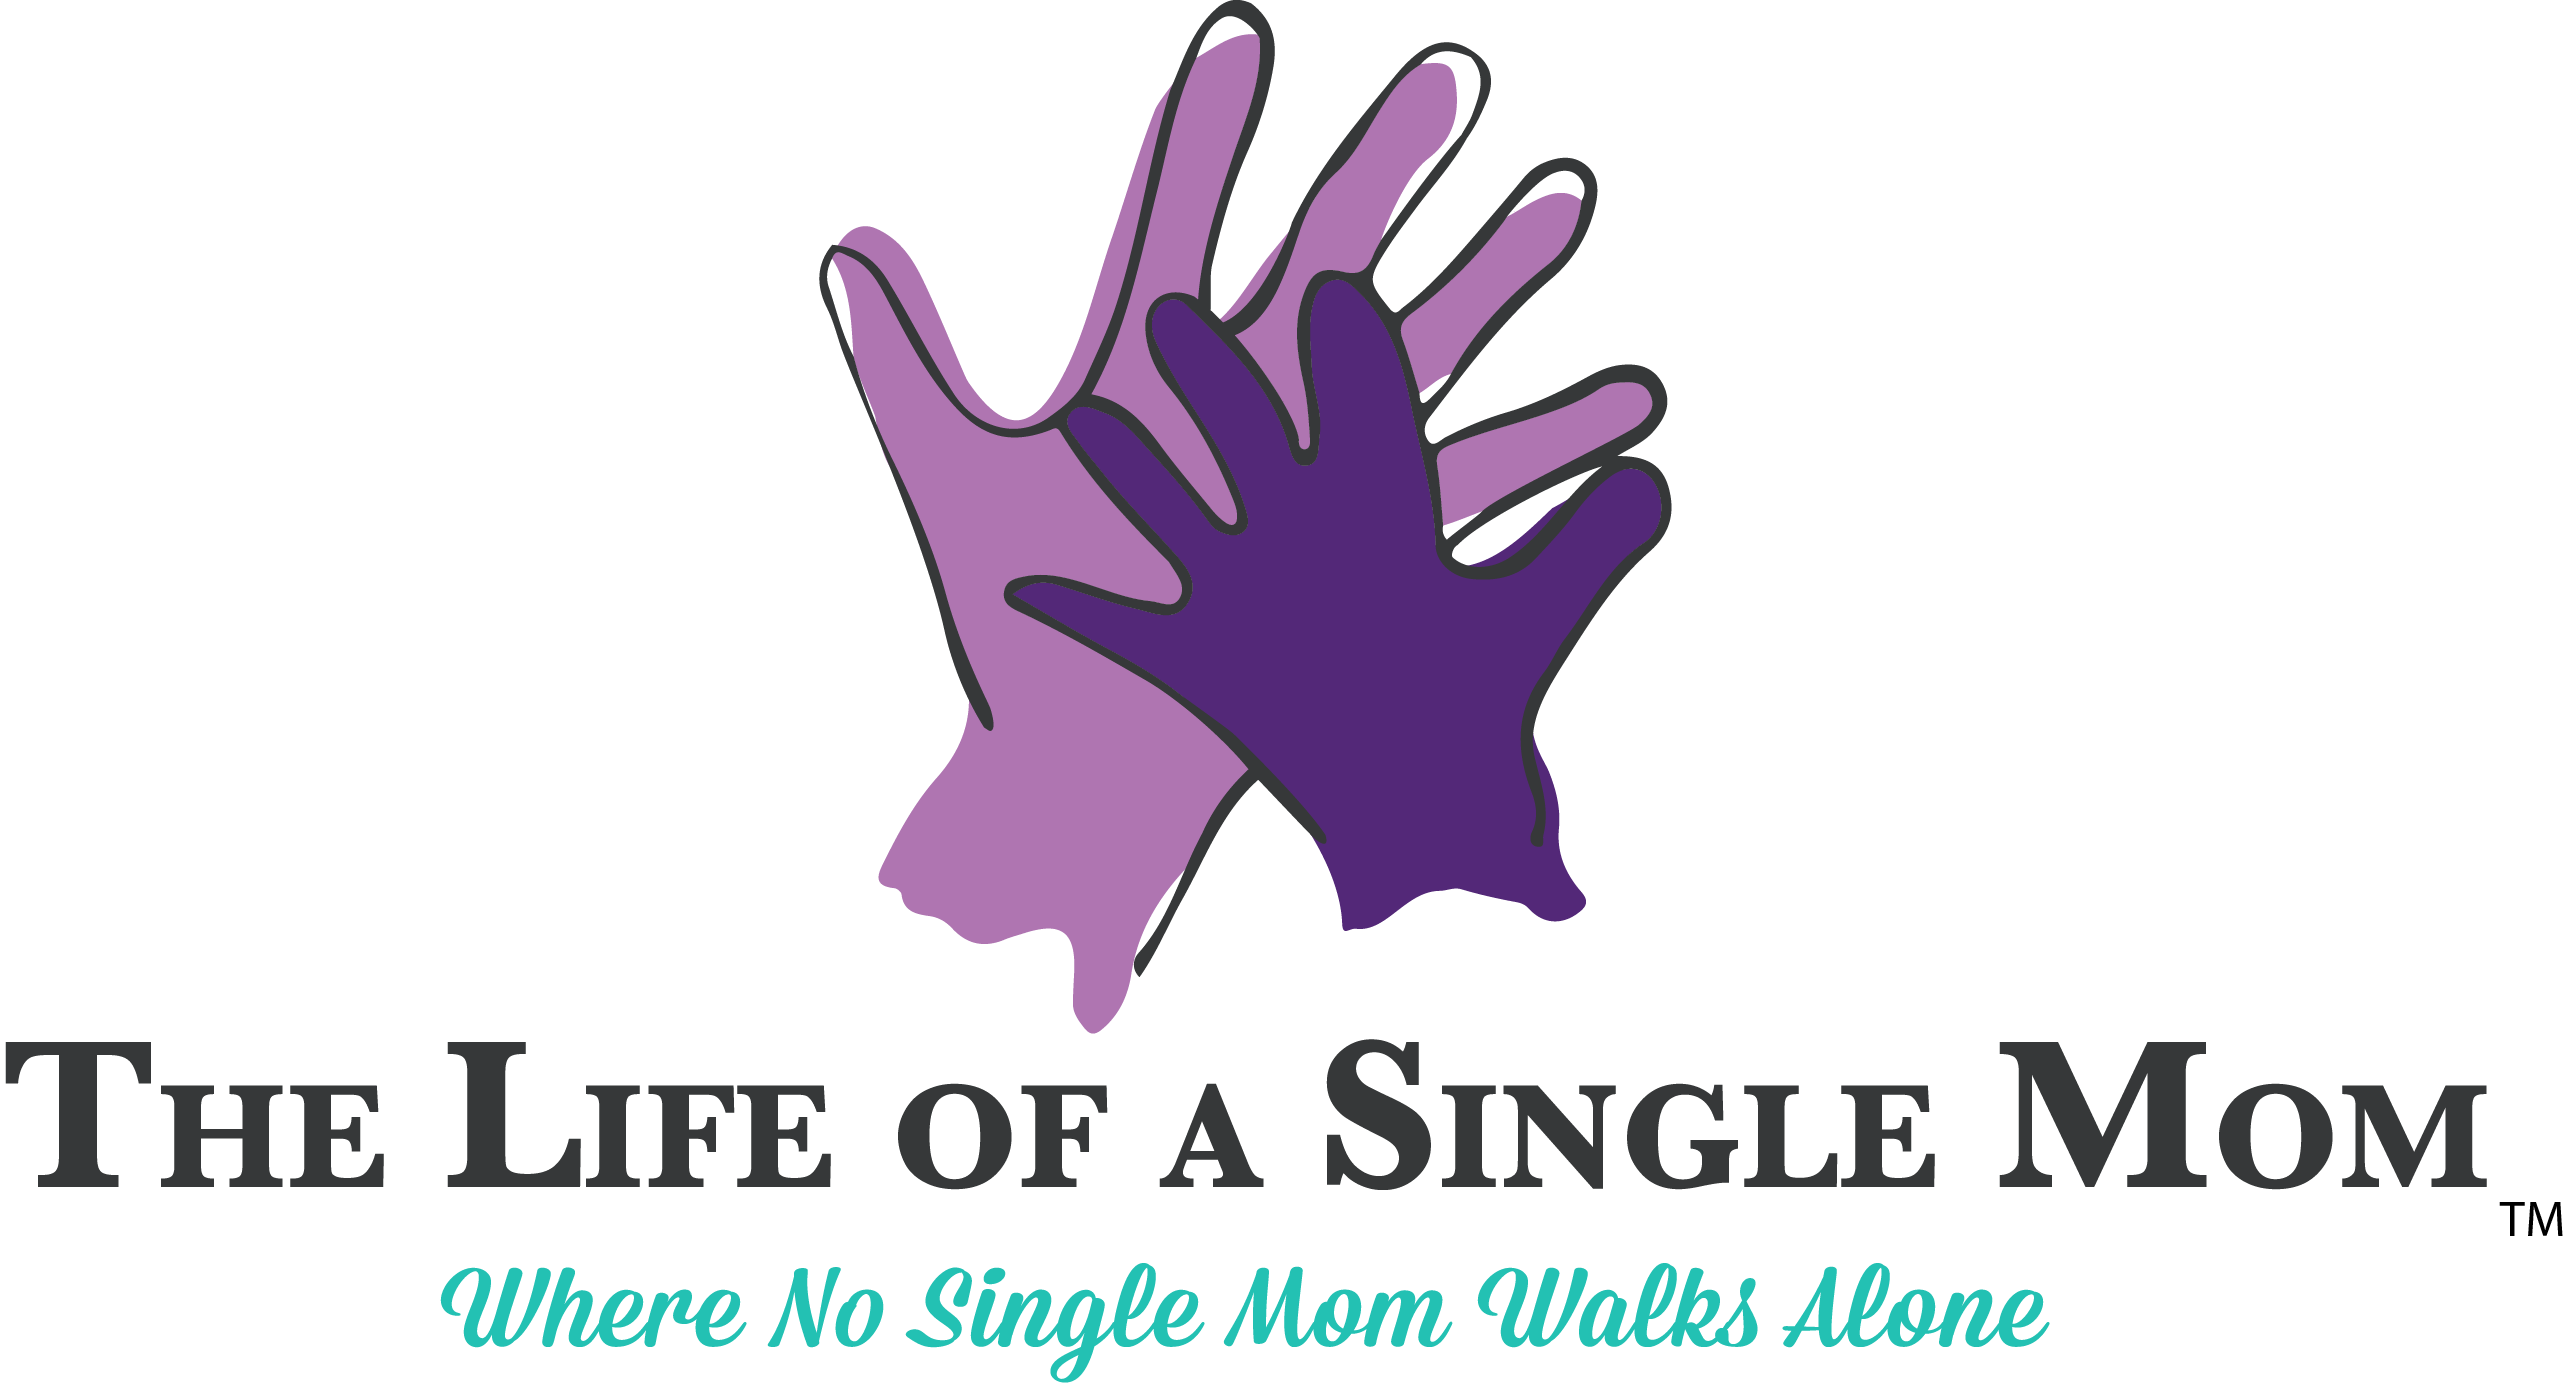 Single mom png. The life of a